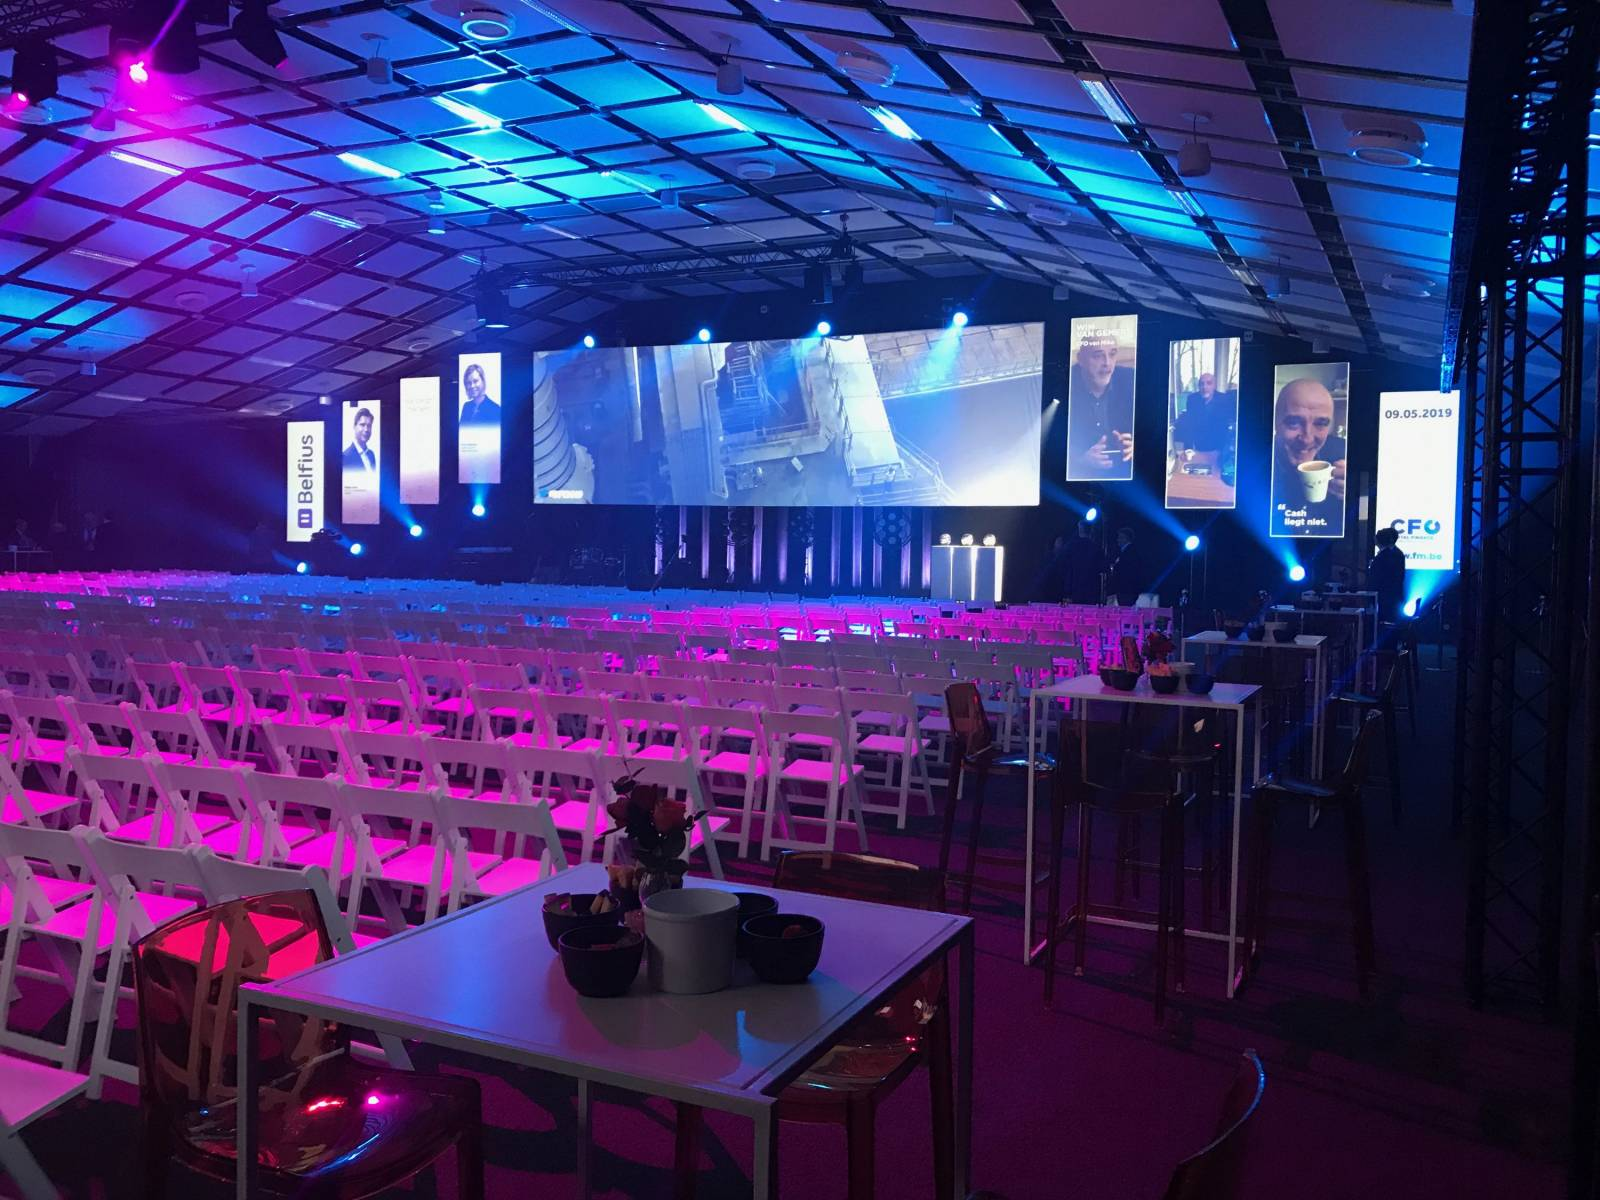 De Montil - Eventlocatie - Feestzaal - House of Events - 12